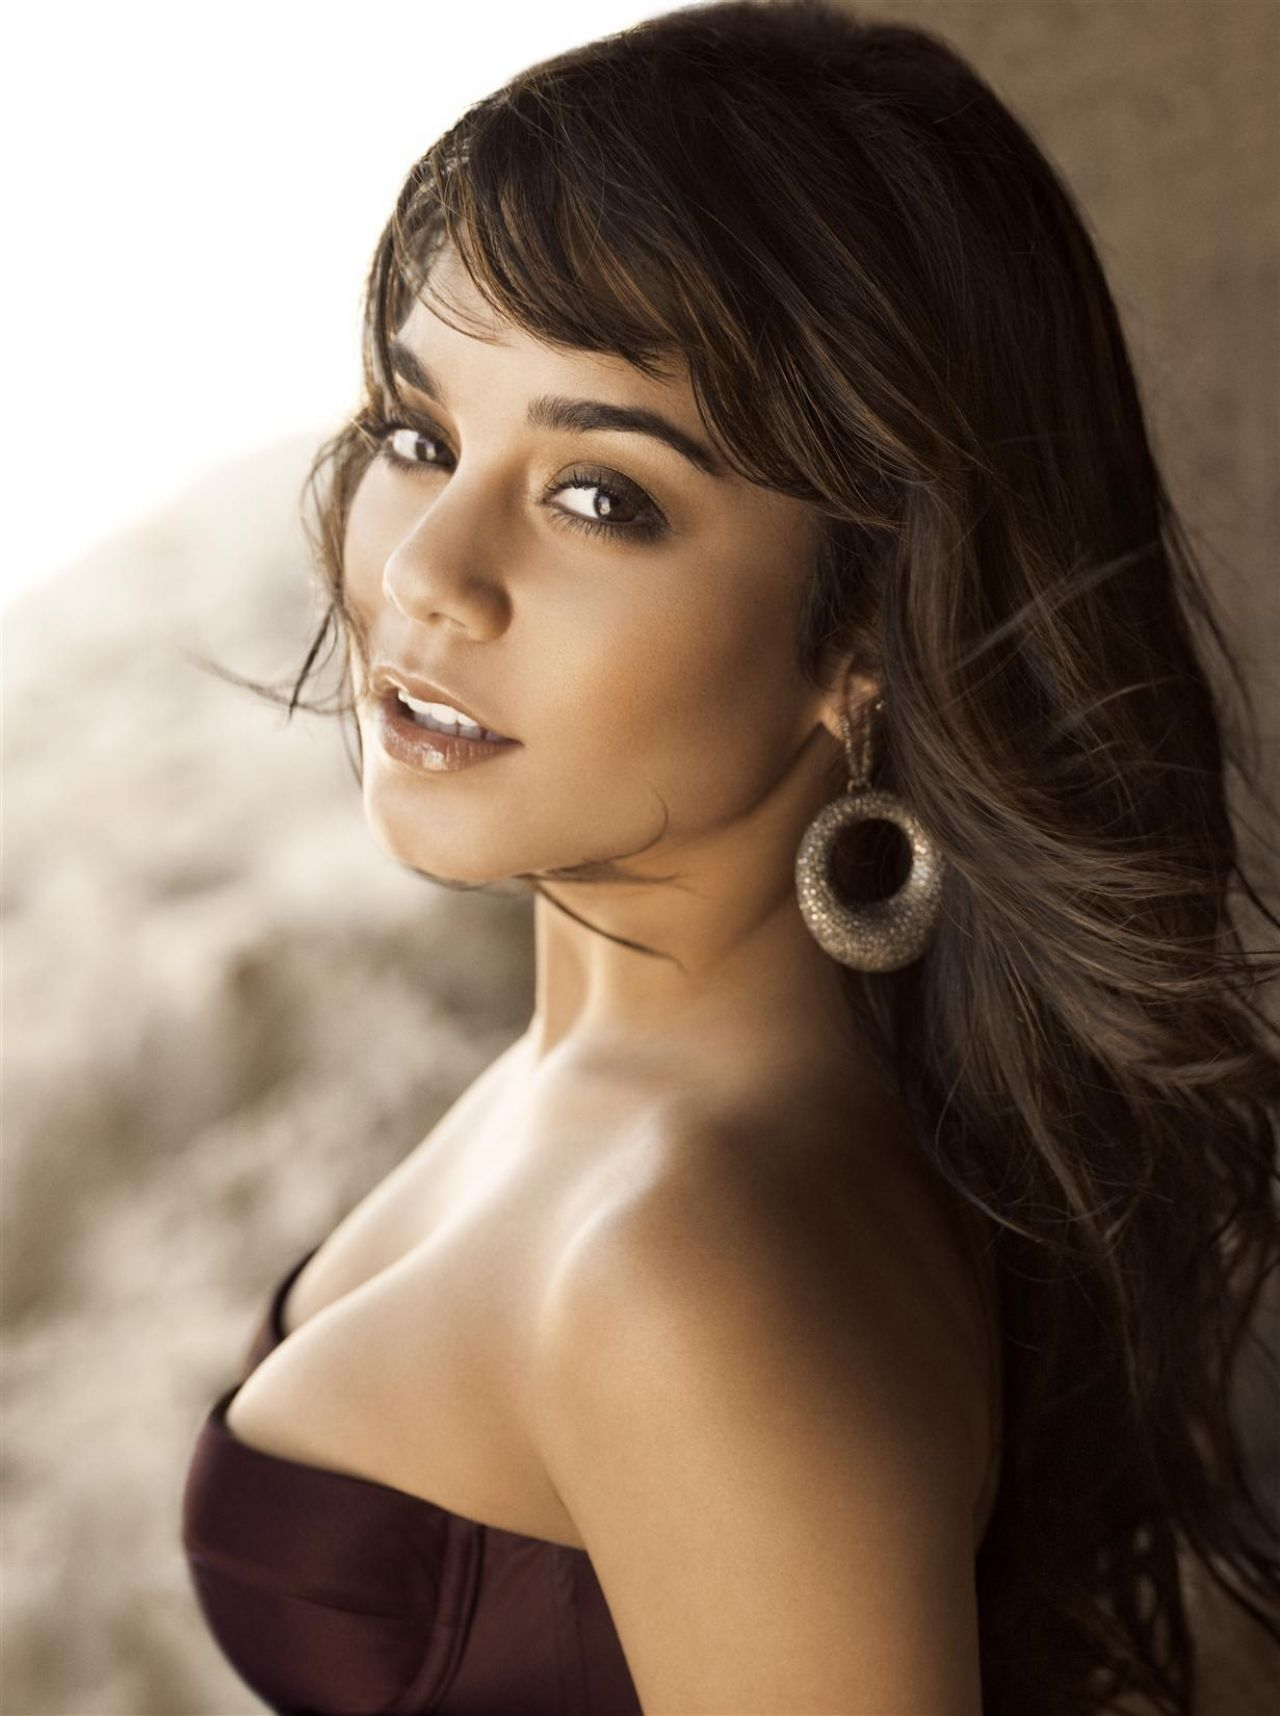 Vanessa Hudgens Photoshoot for ALLURE Magazine - October 2009